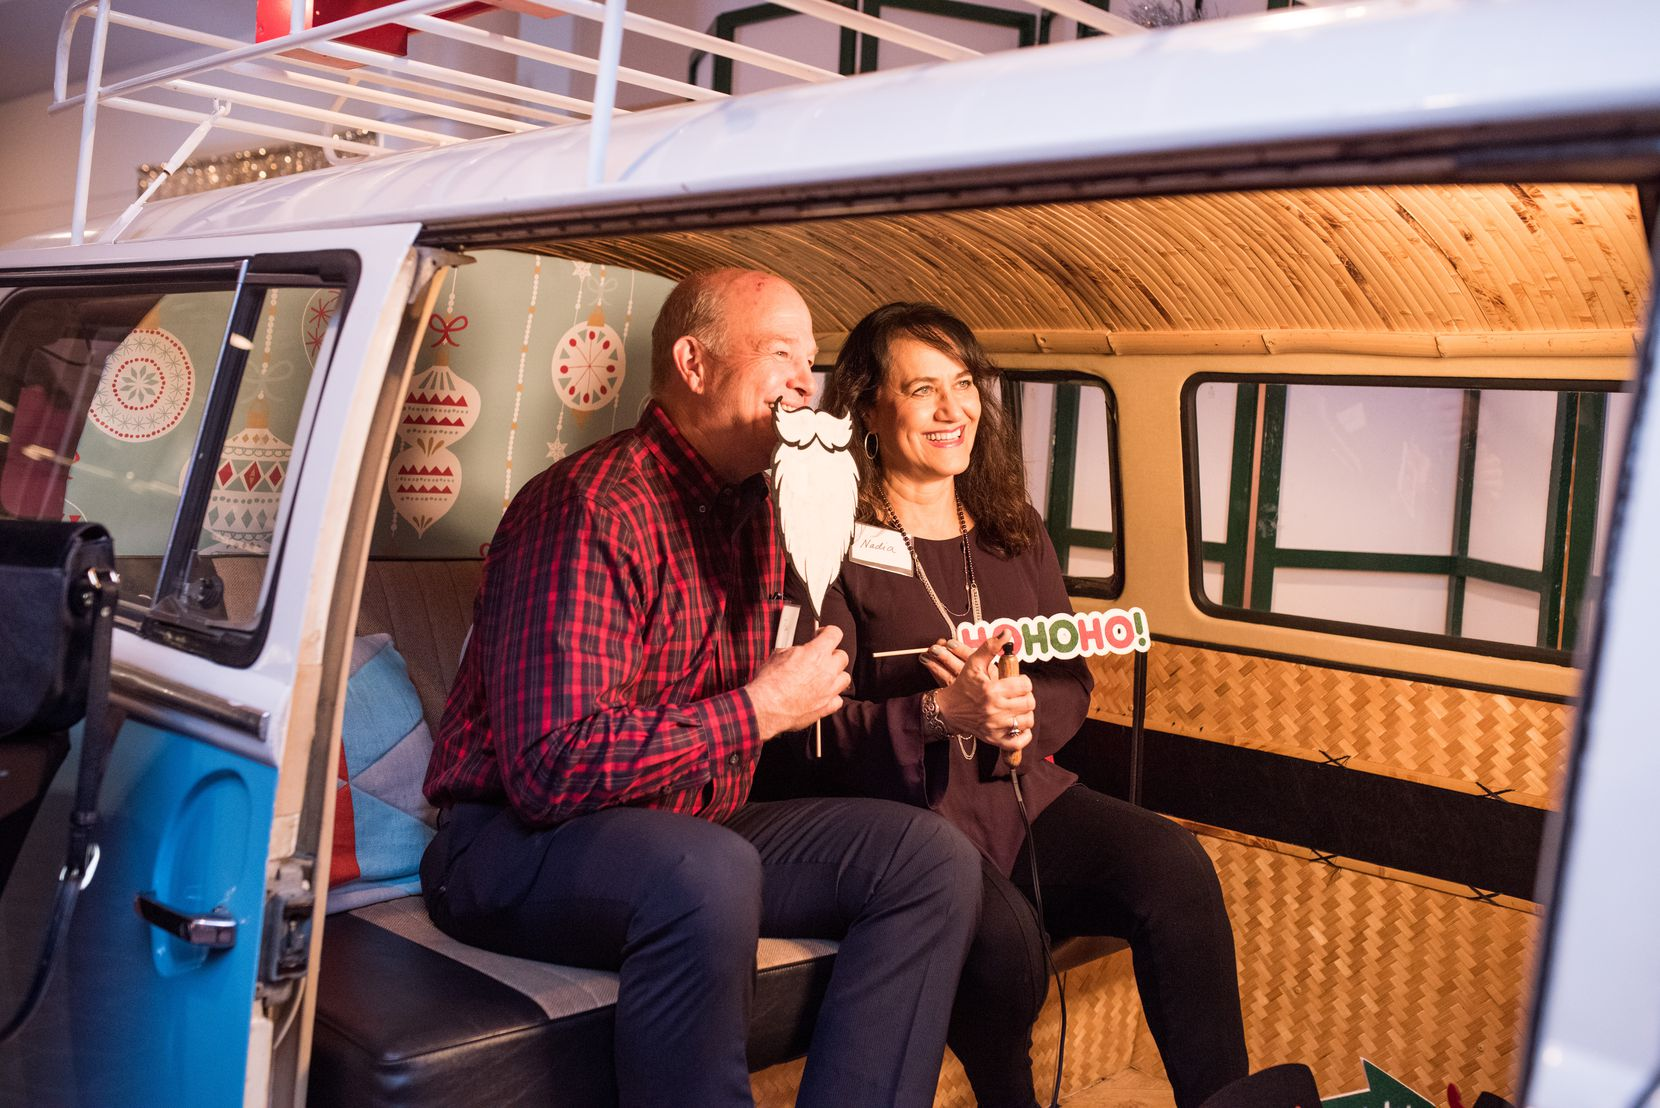 Hill & Wilkinson CEO Paul Driscoll and his wife Nadia enjoyed the retro VW bus photo booth at a company Christmas party at the Granville Arts Center in Garland.